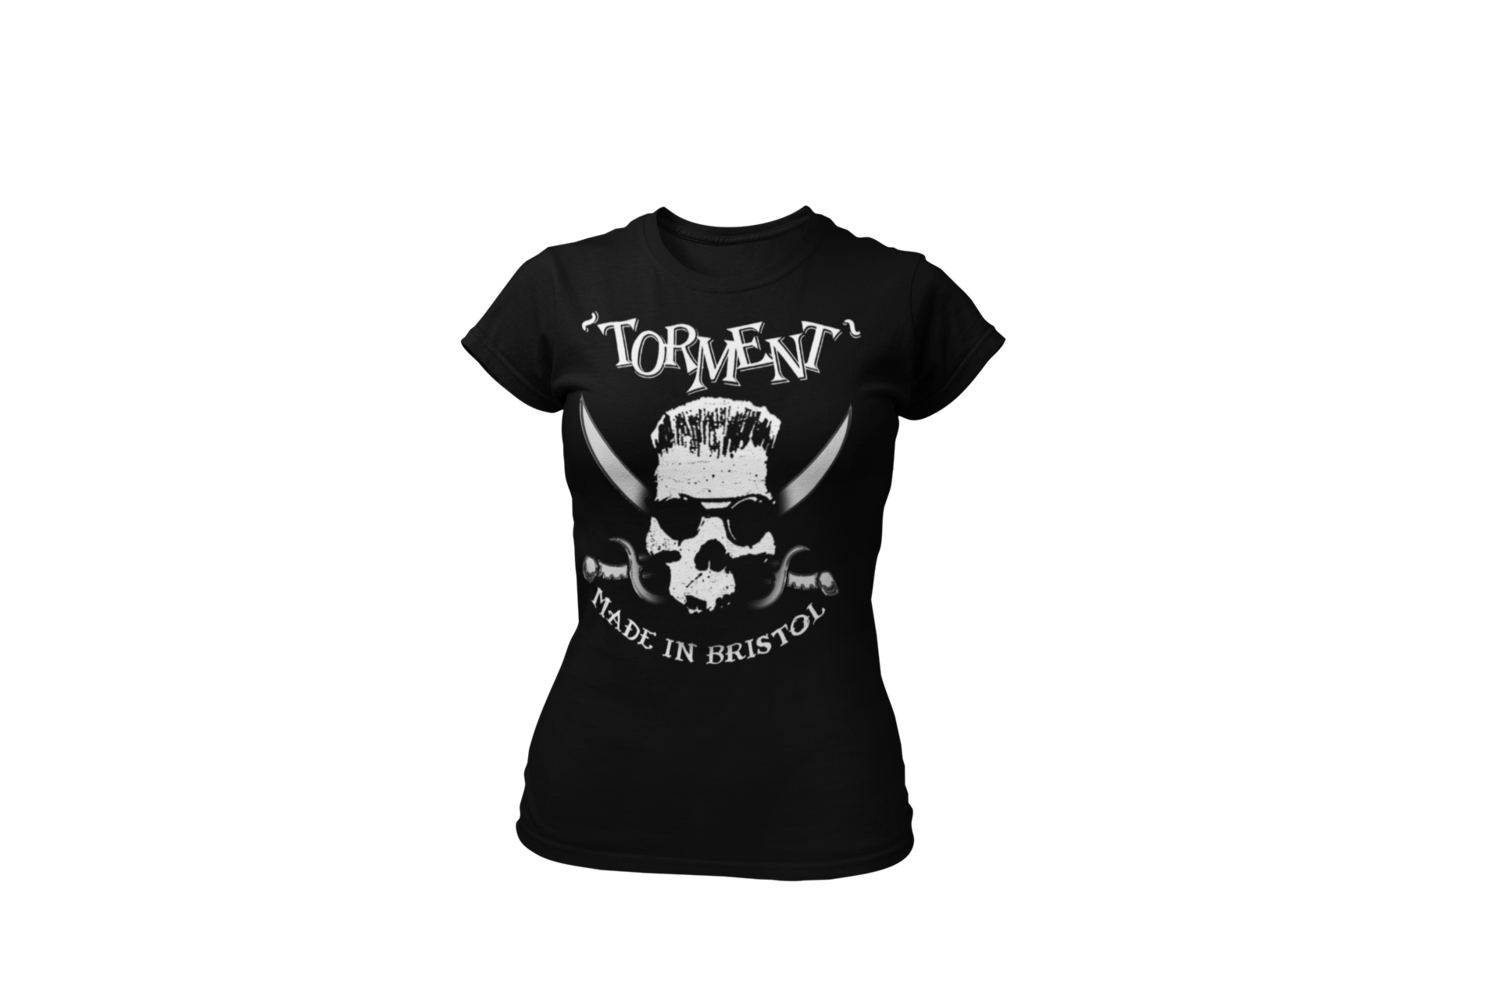 """TORMENT """"Made in Bristol"""" tshirt for WOMEN"""